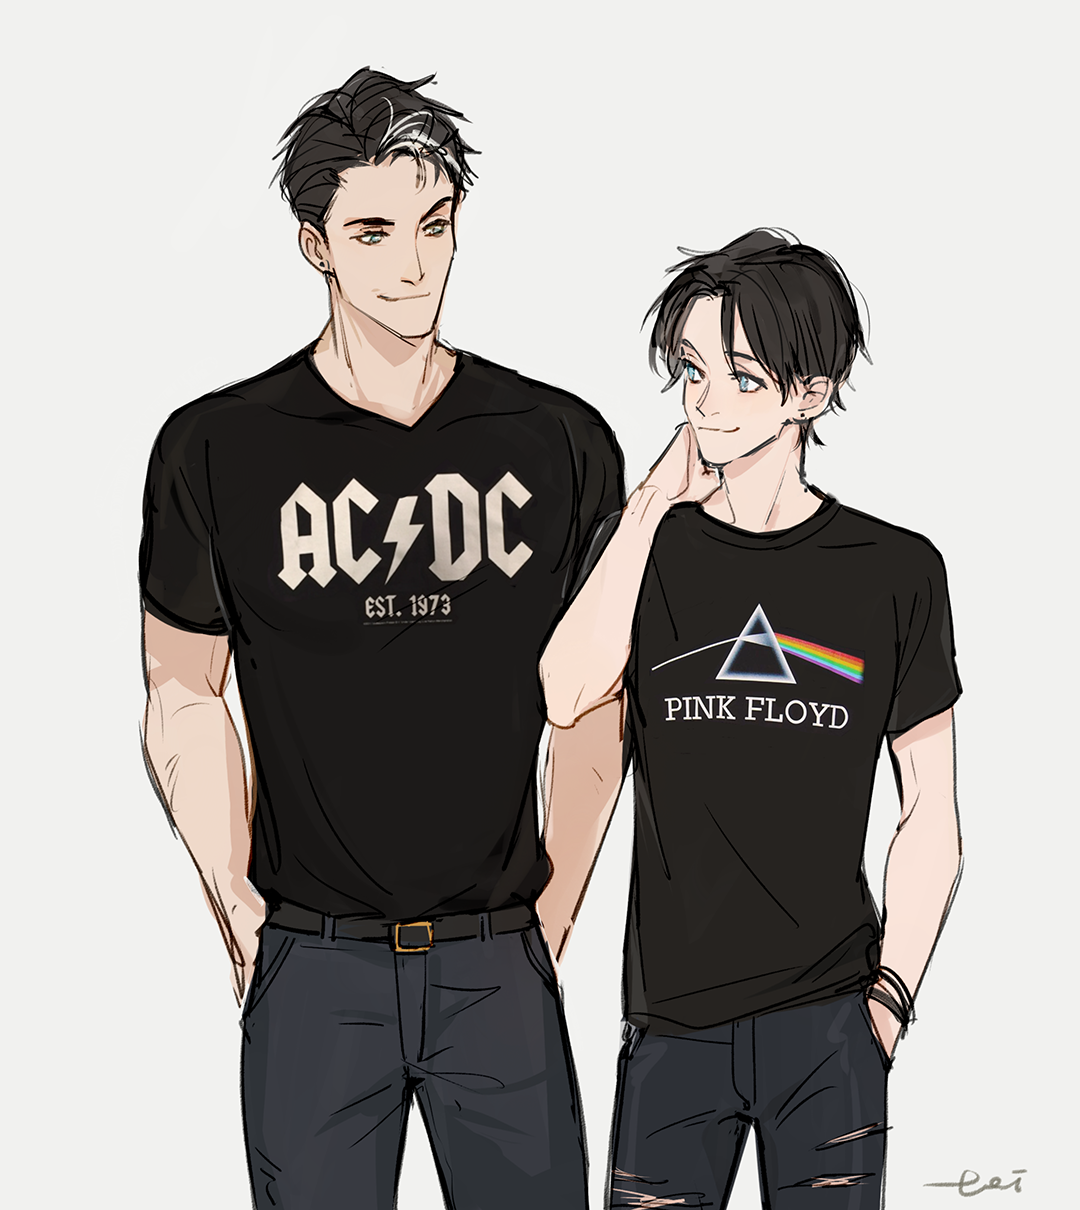 نتیجه تصویری برای ‪jason todd and tim drake fanart Pinterest‬‏